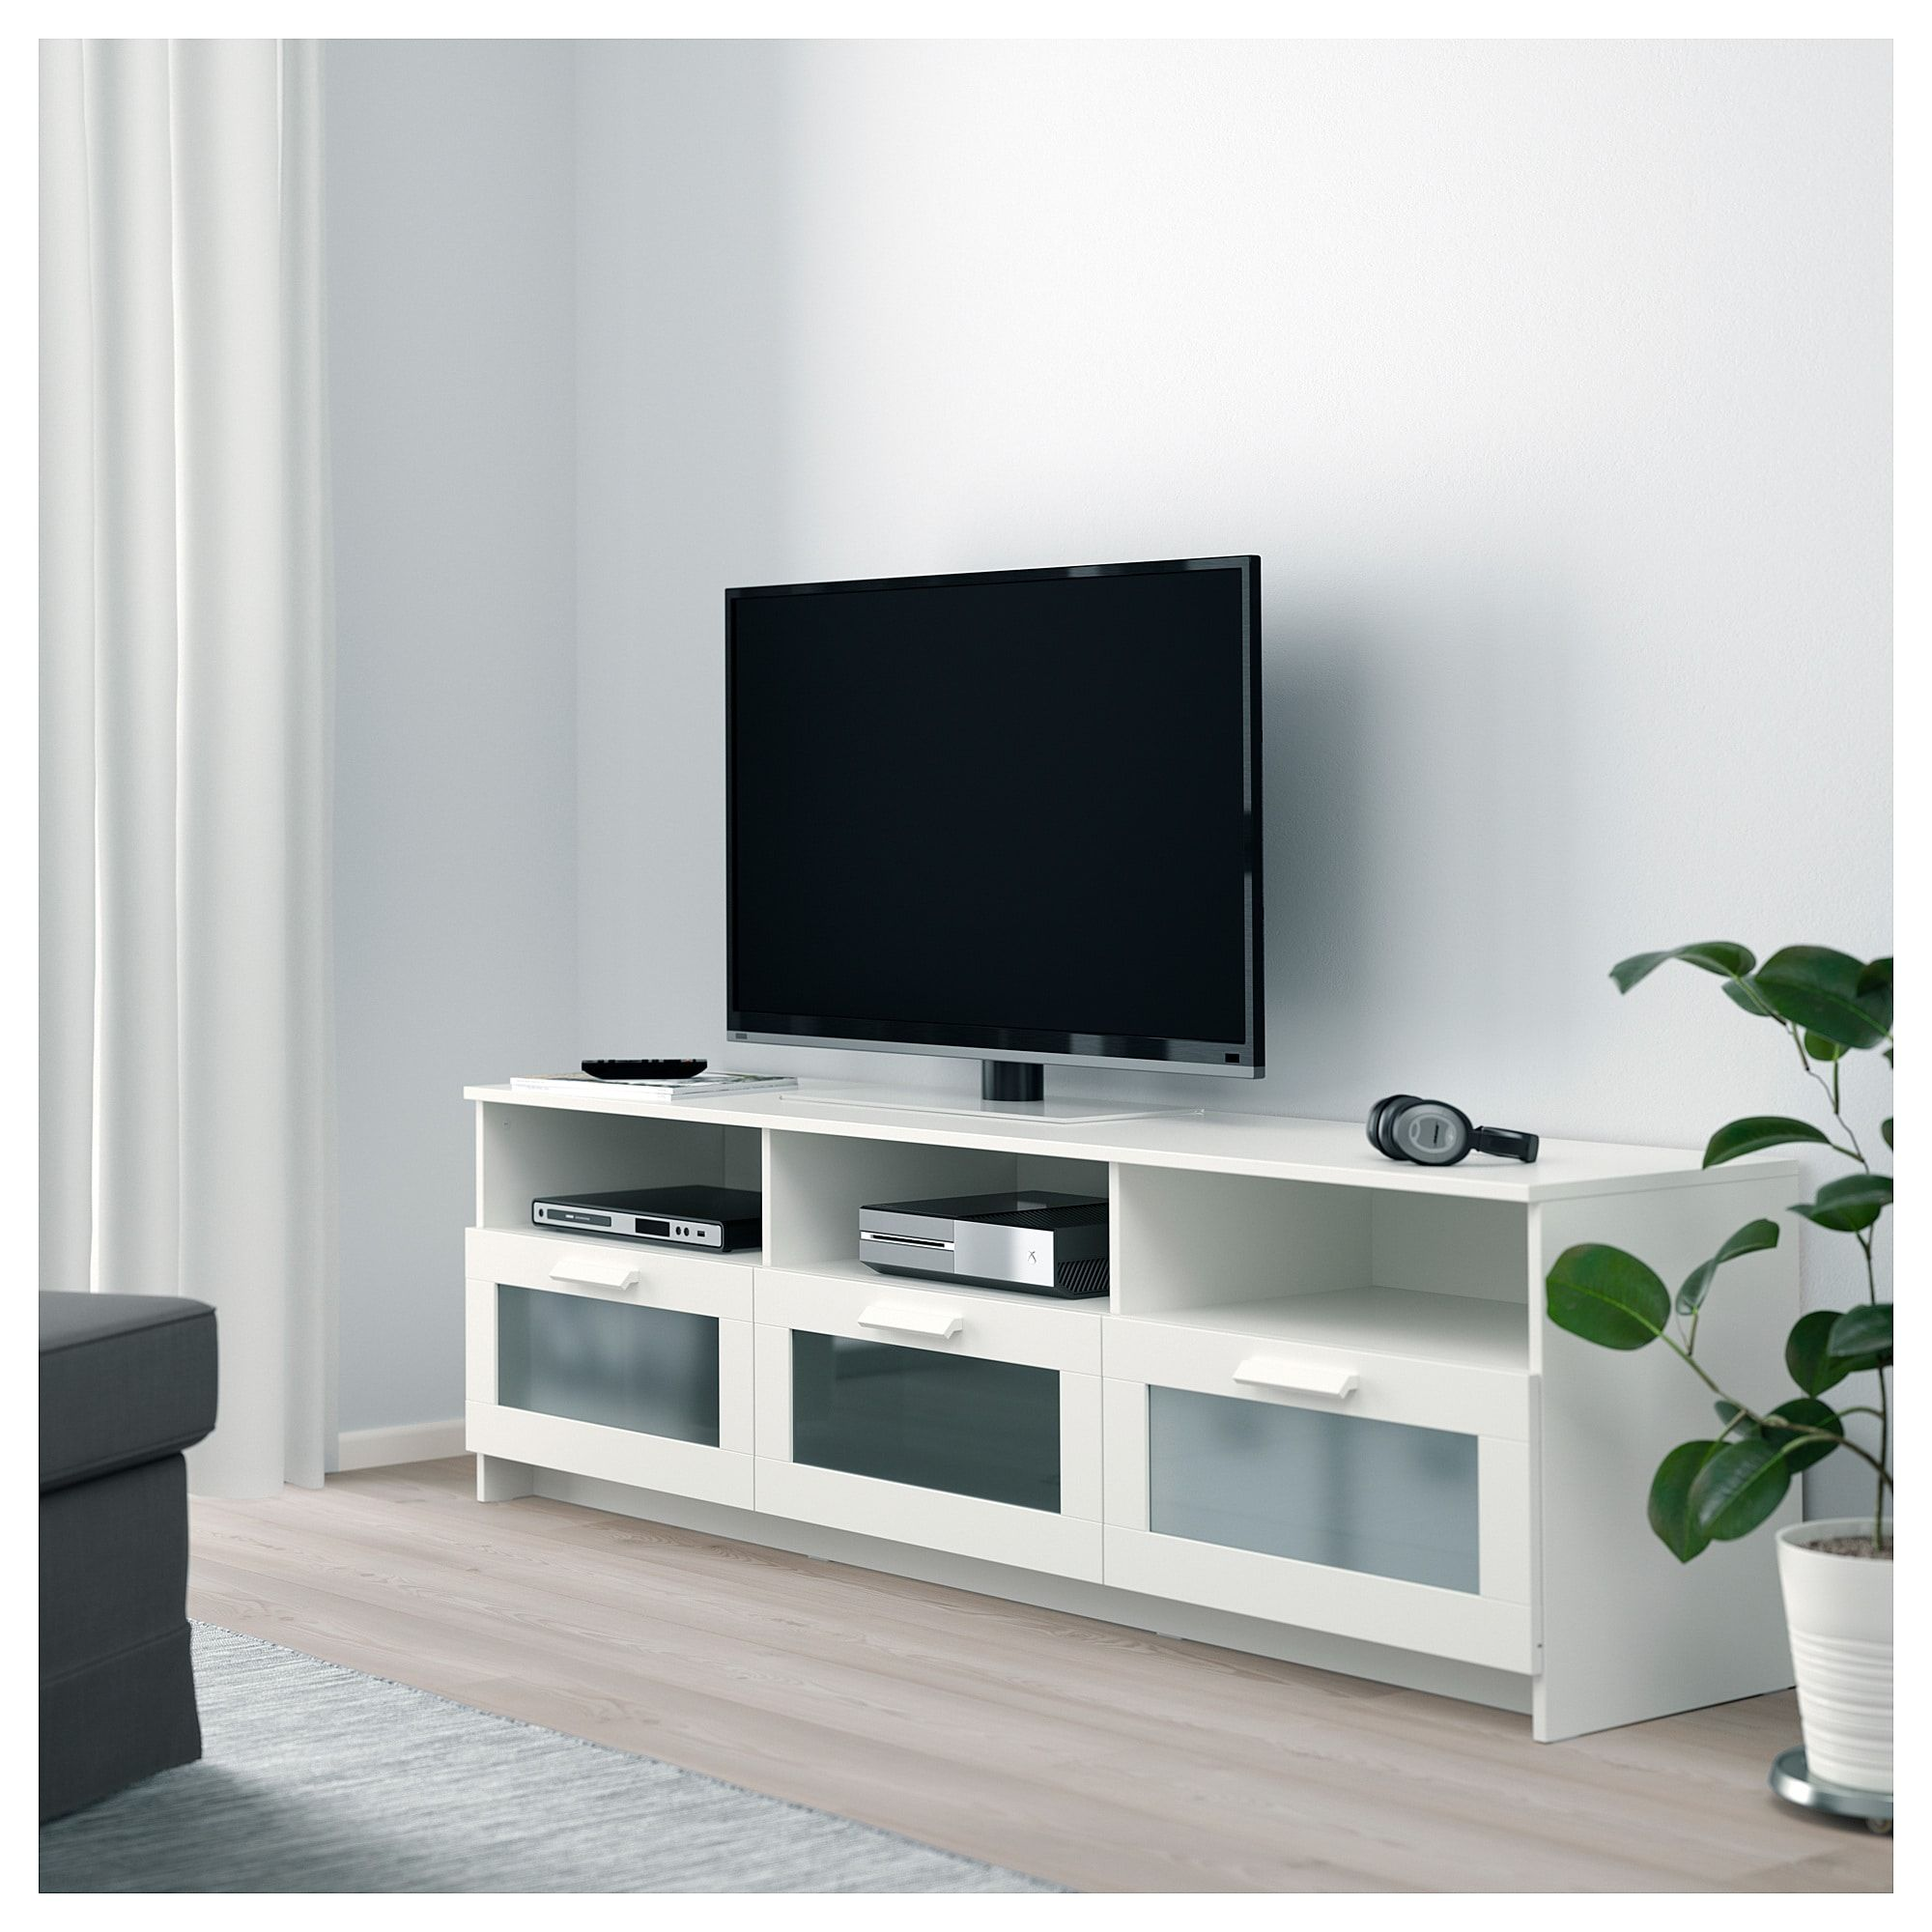 Ikea Lowboard Tv Ikea Brimnes Tv Bench White In 2019 Products Tv Bench